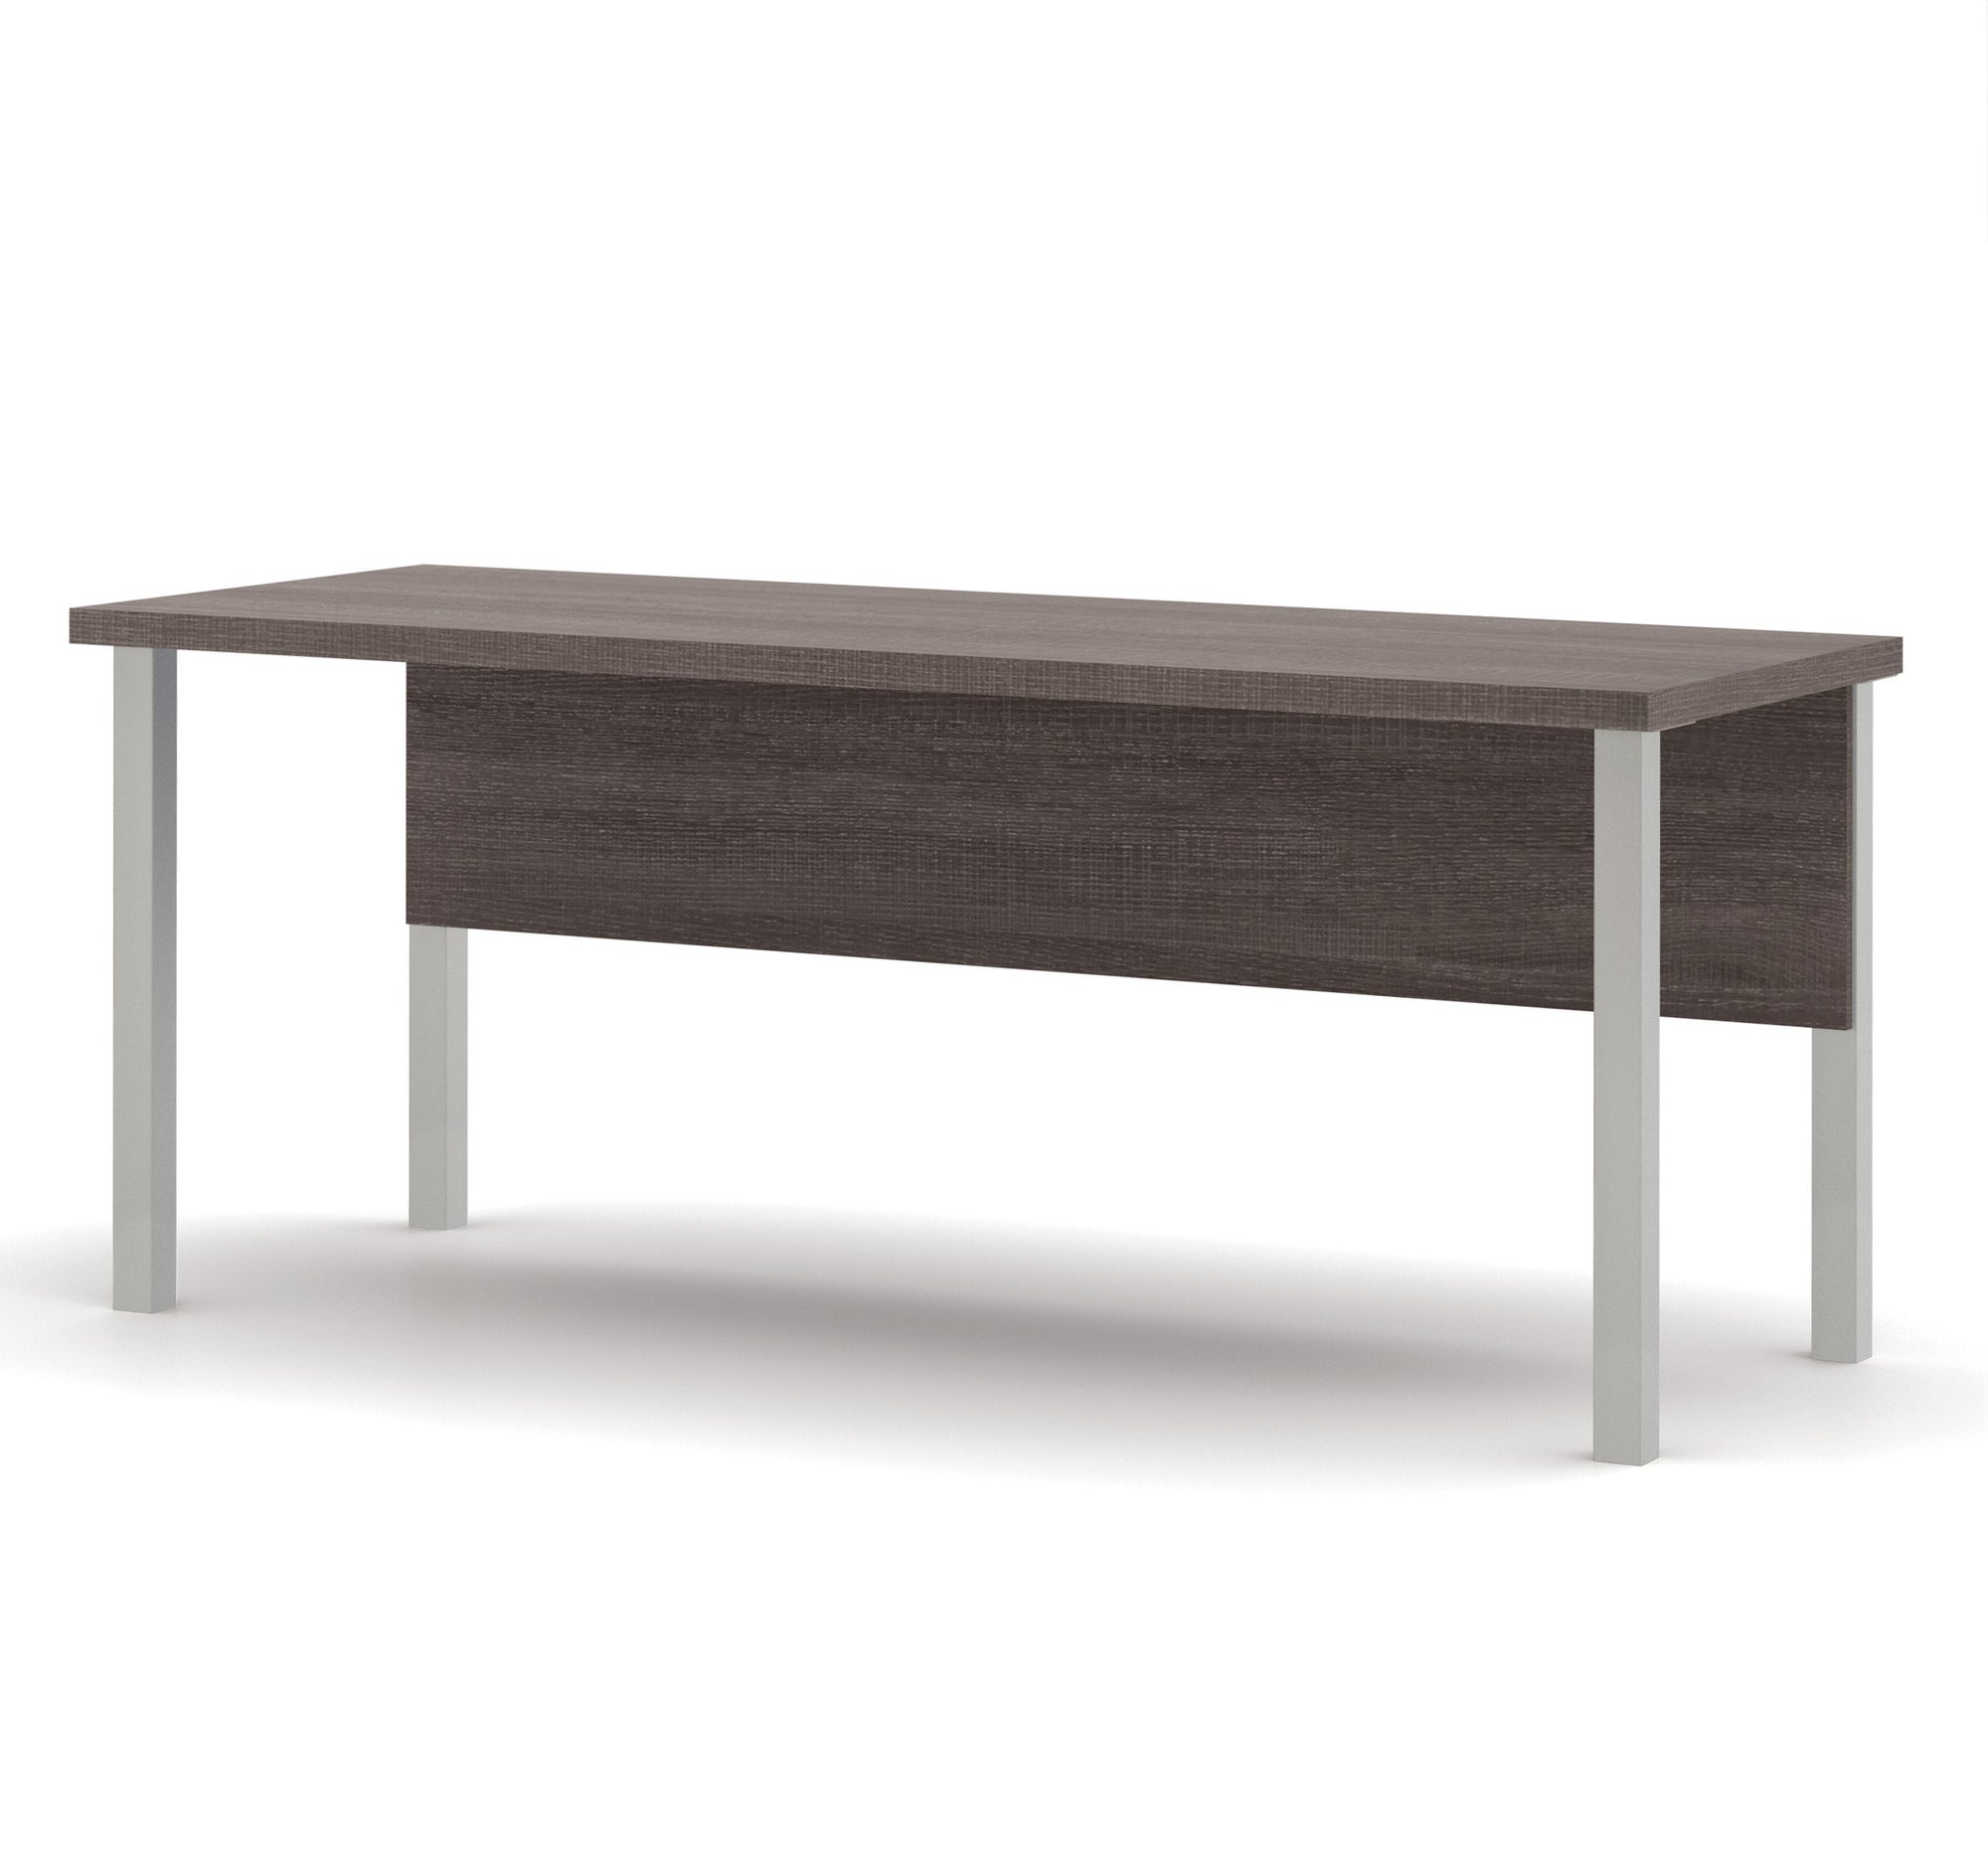 office lines executive thermally desk wood silver desks space to clean and work resistant laminate any addition looking water metalwork good modern grain fused espresso great